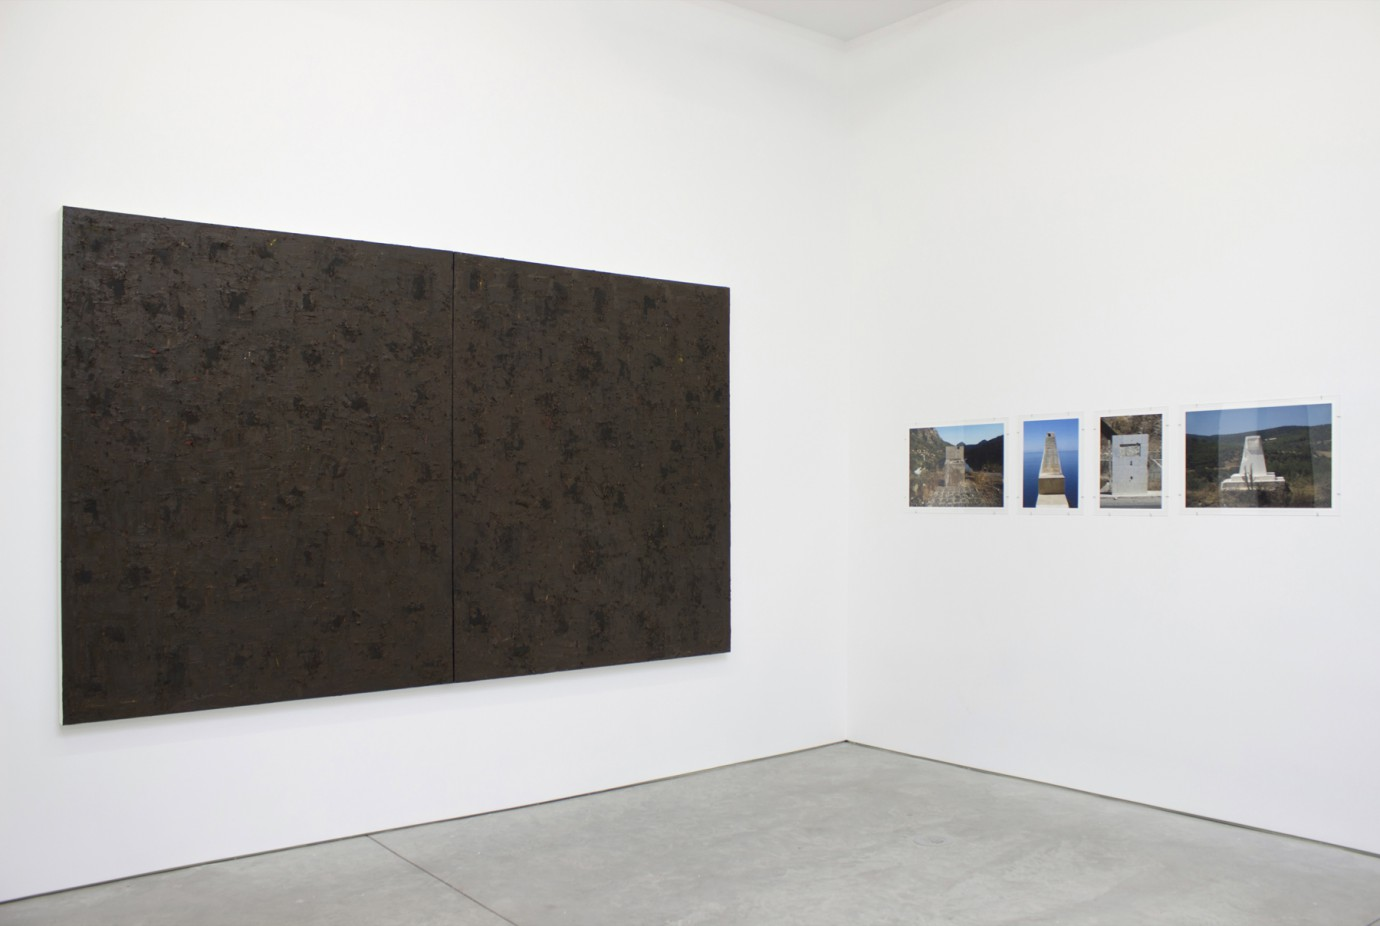 201507_Gallery-BK_GWCD_exhibit view_93